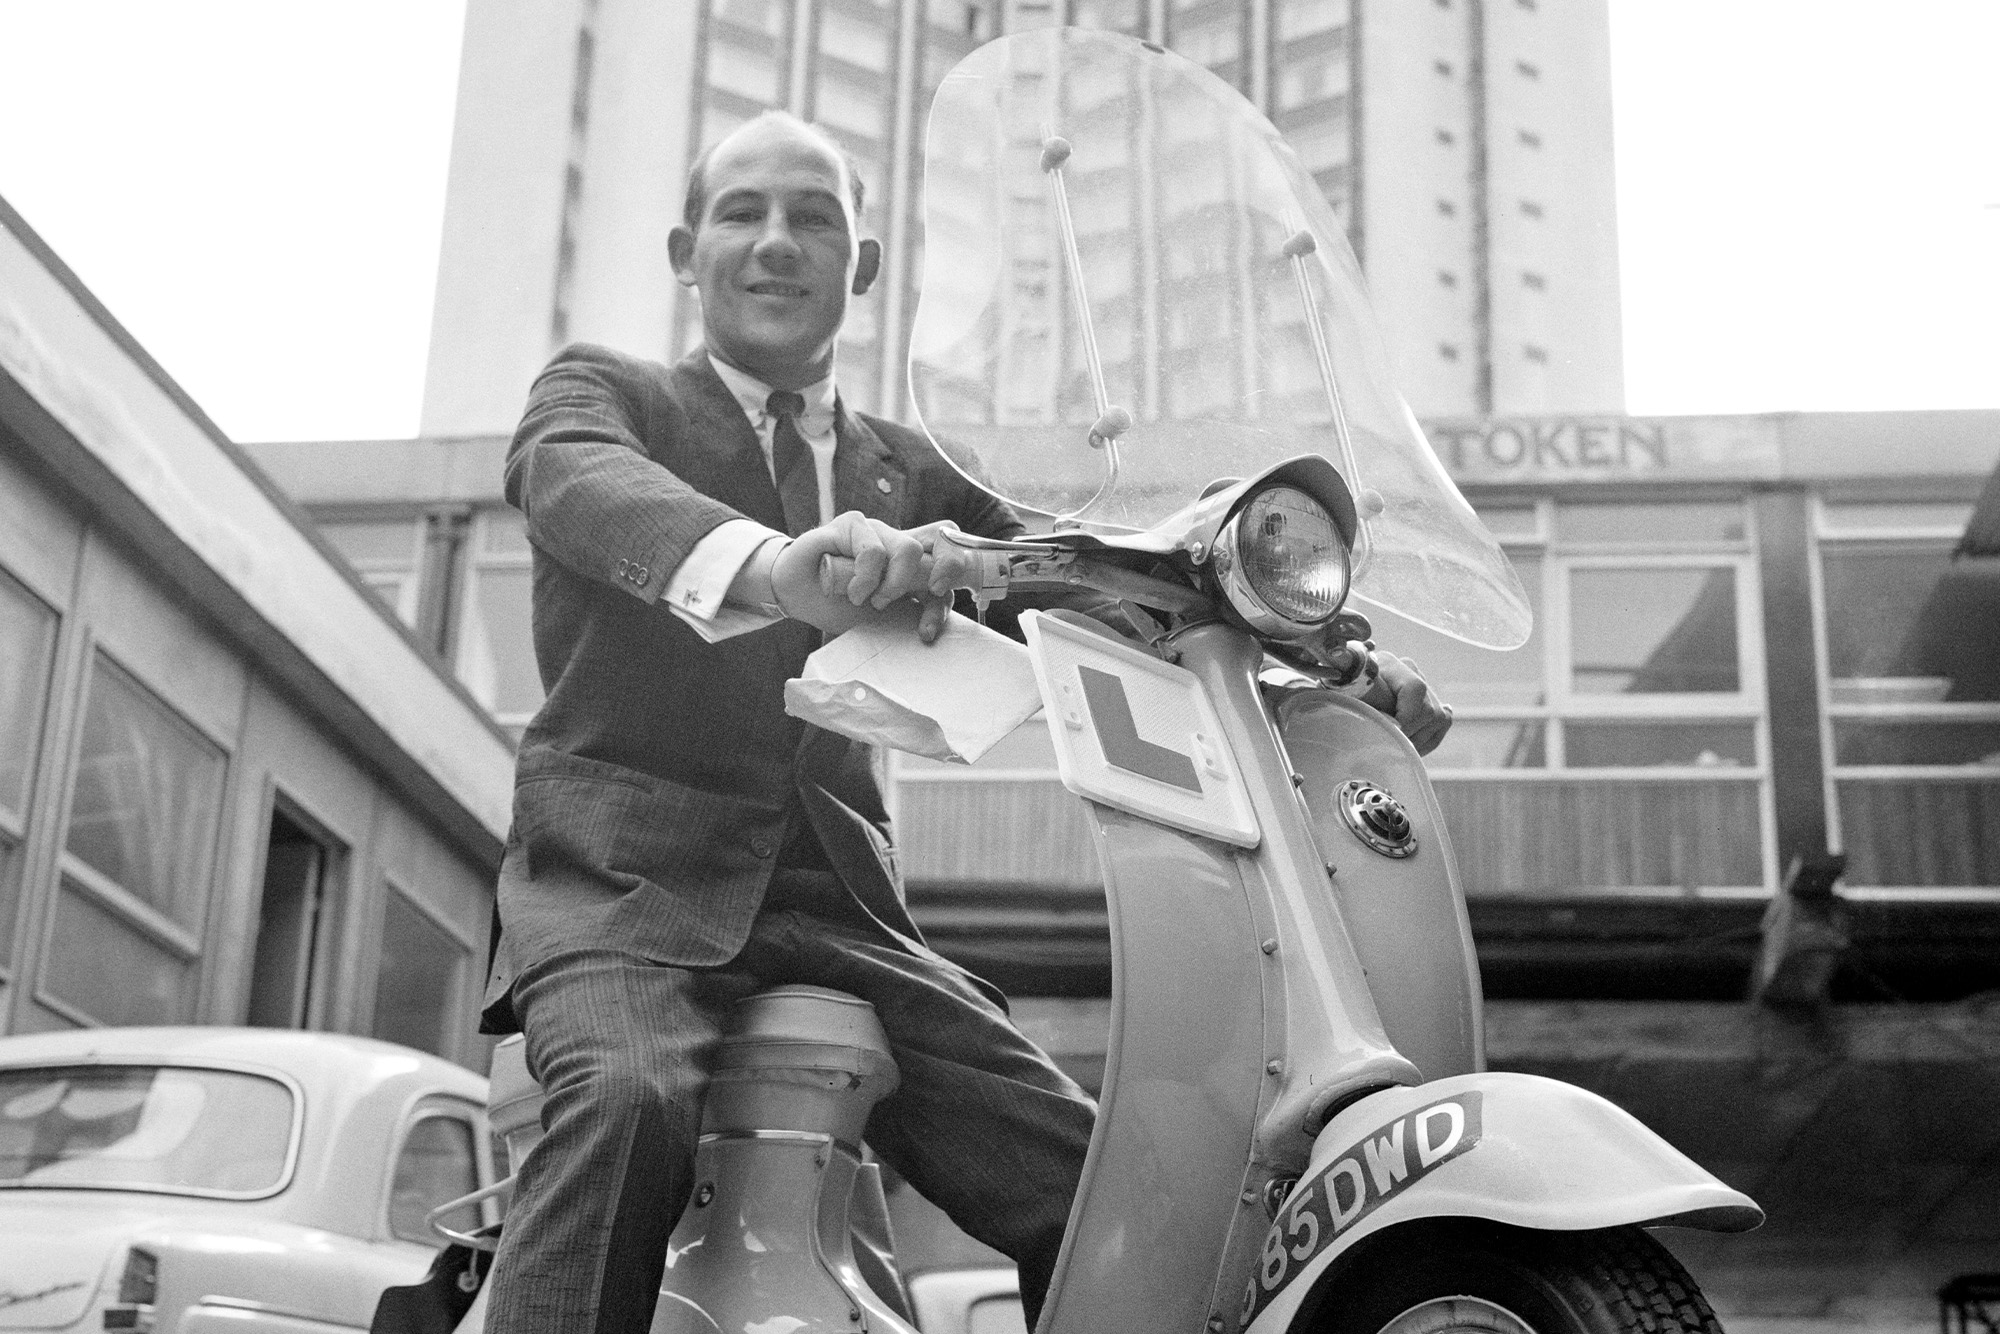 Stirling Moss in London on a scooter